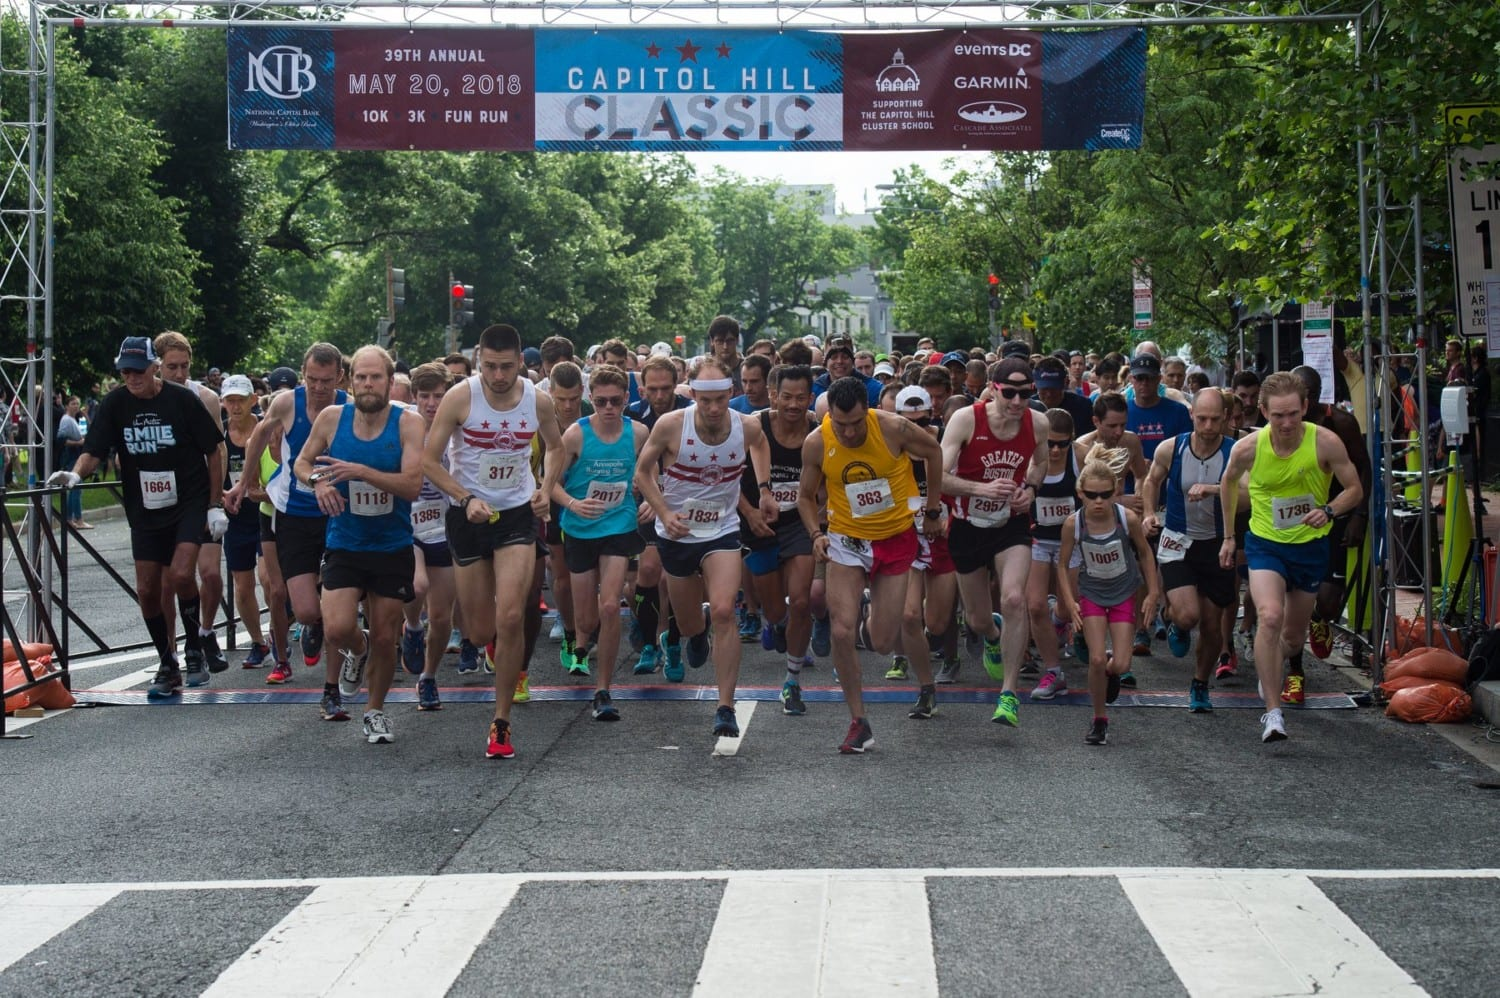 Runners begin a race on Capitol Hill